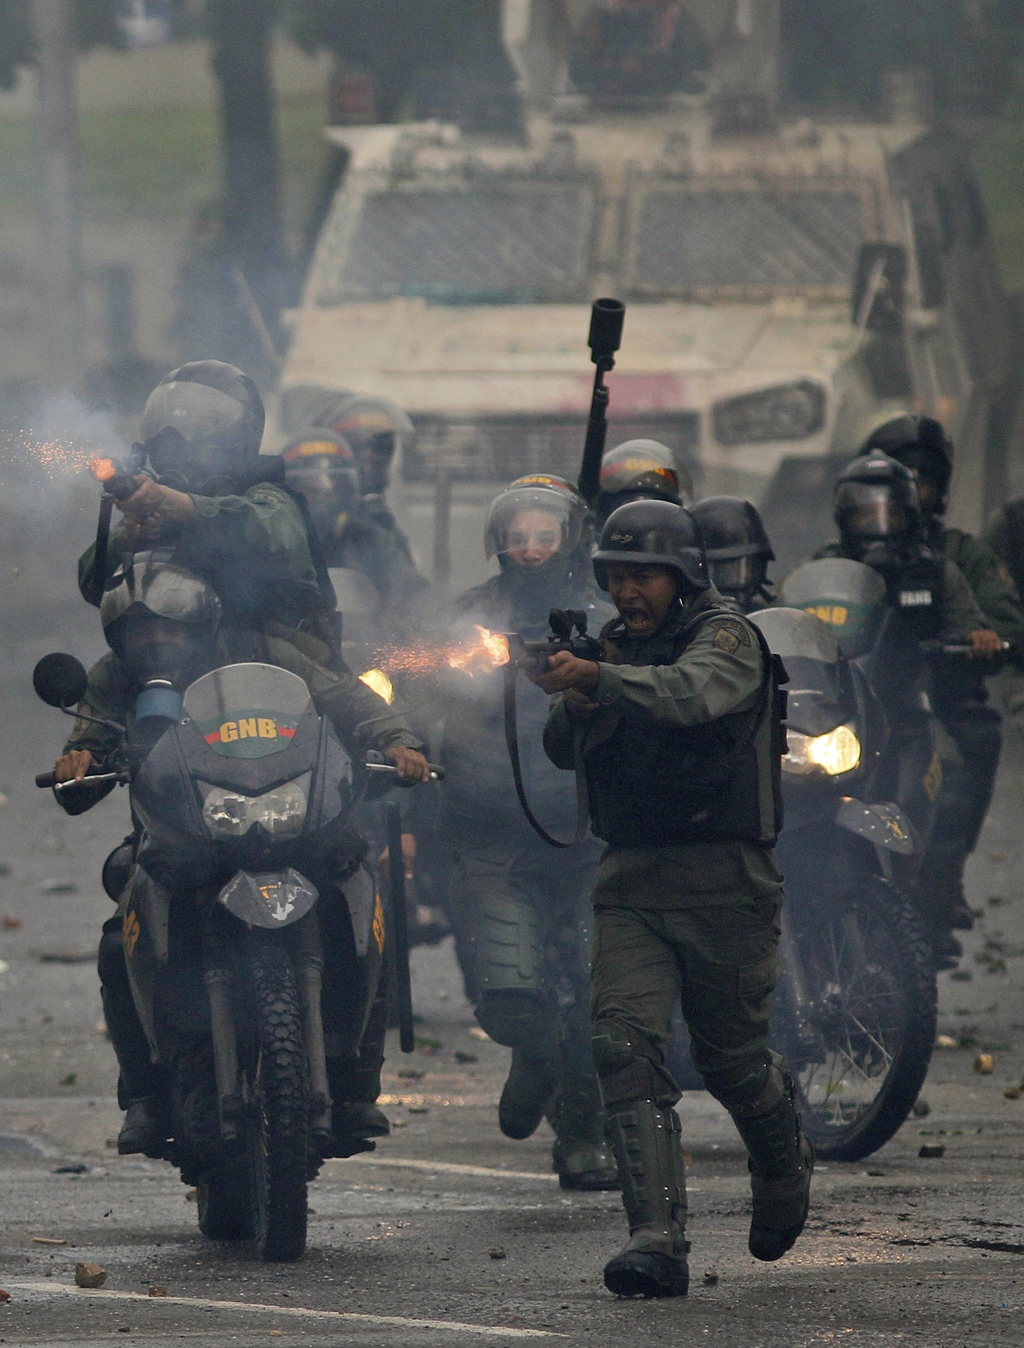 FILE - In this July 28, 2017 file photo, Bolivarian National Guards fire rubber bullets as they advance on anti-government demonstrators in Caracas, V...